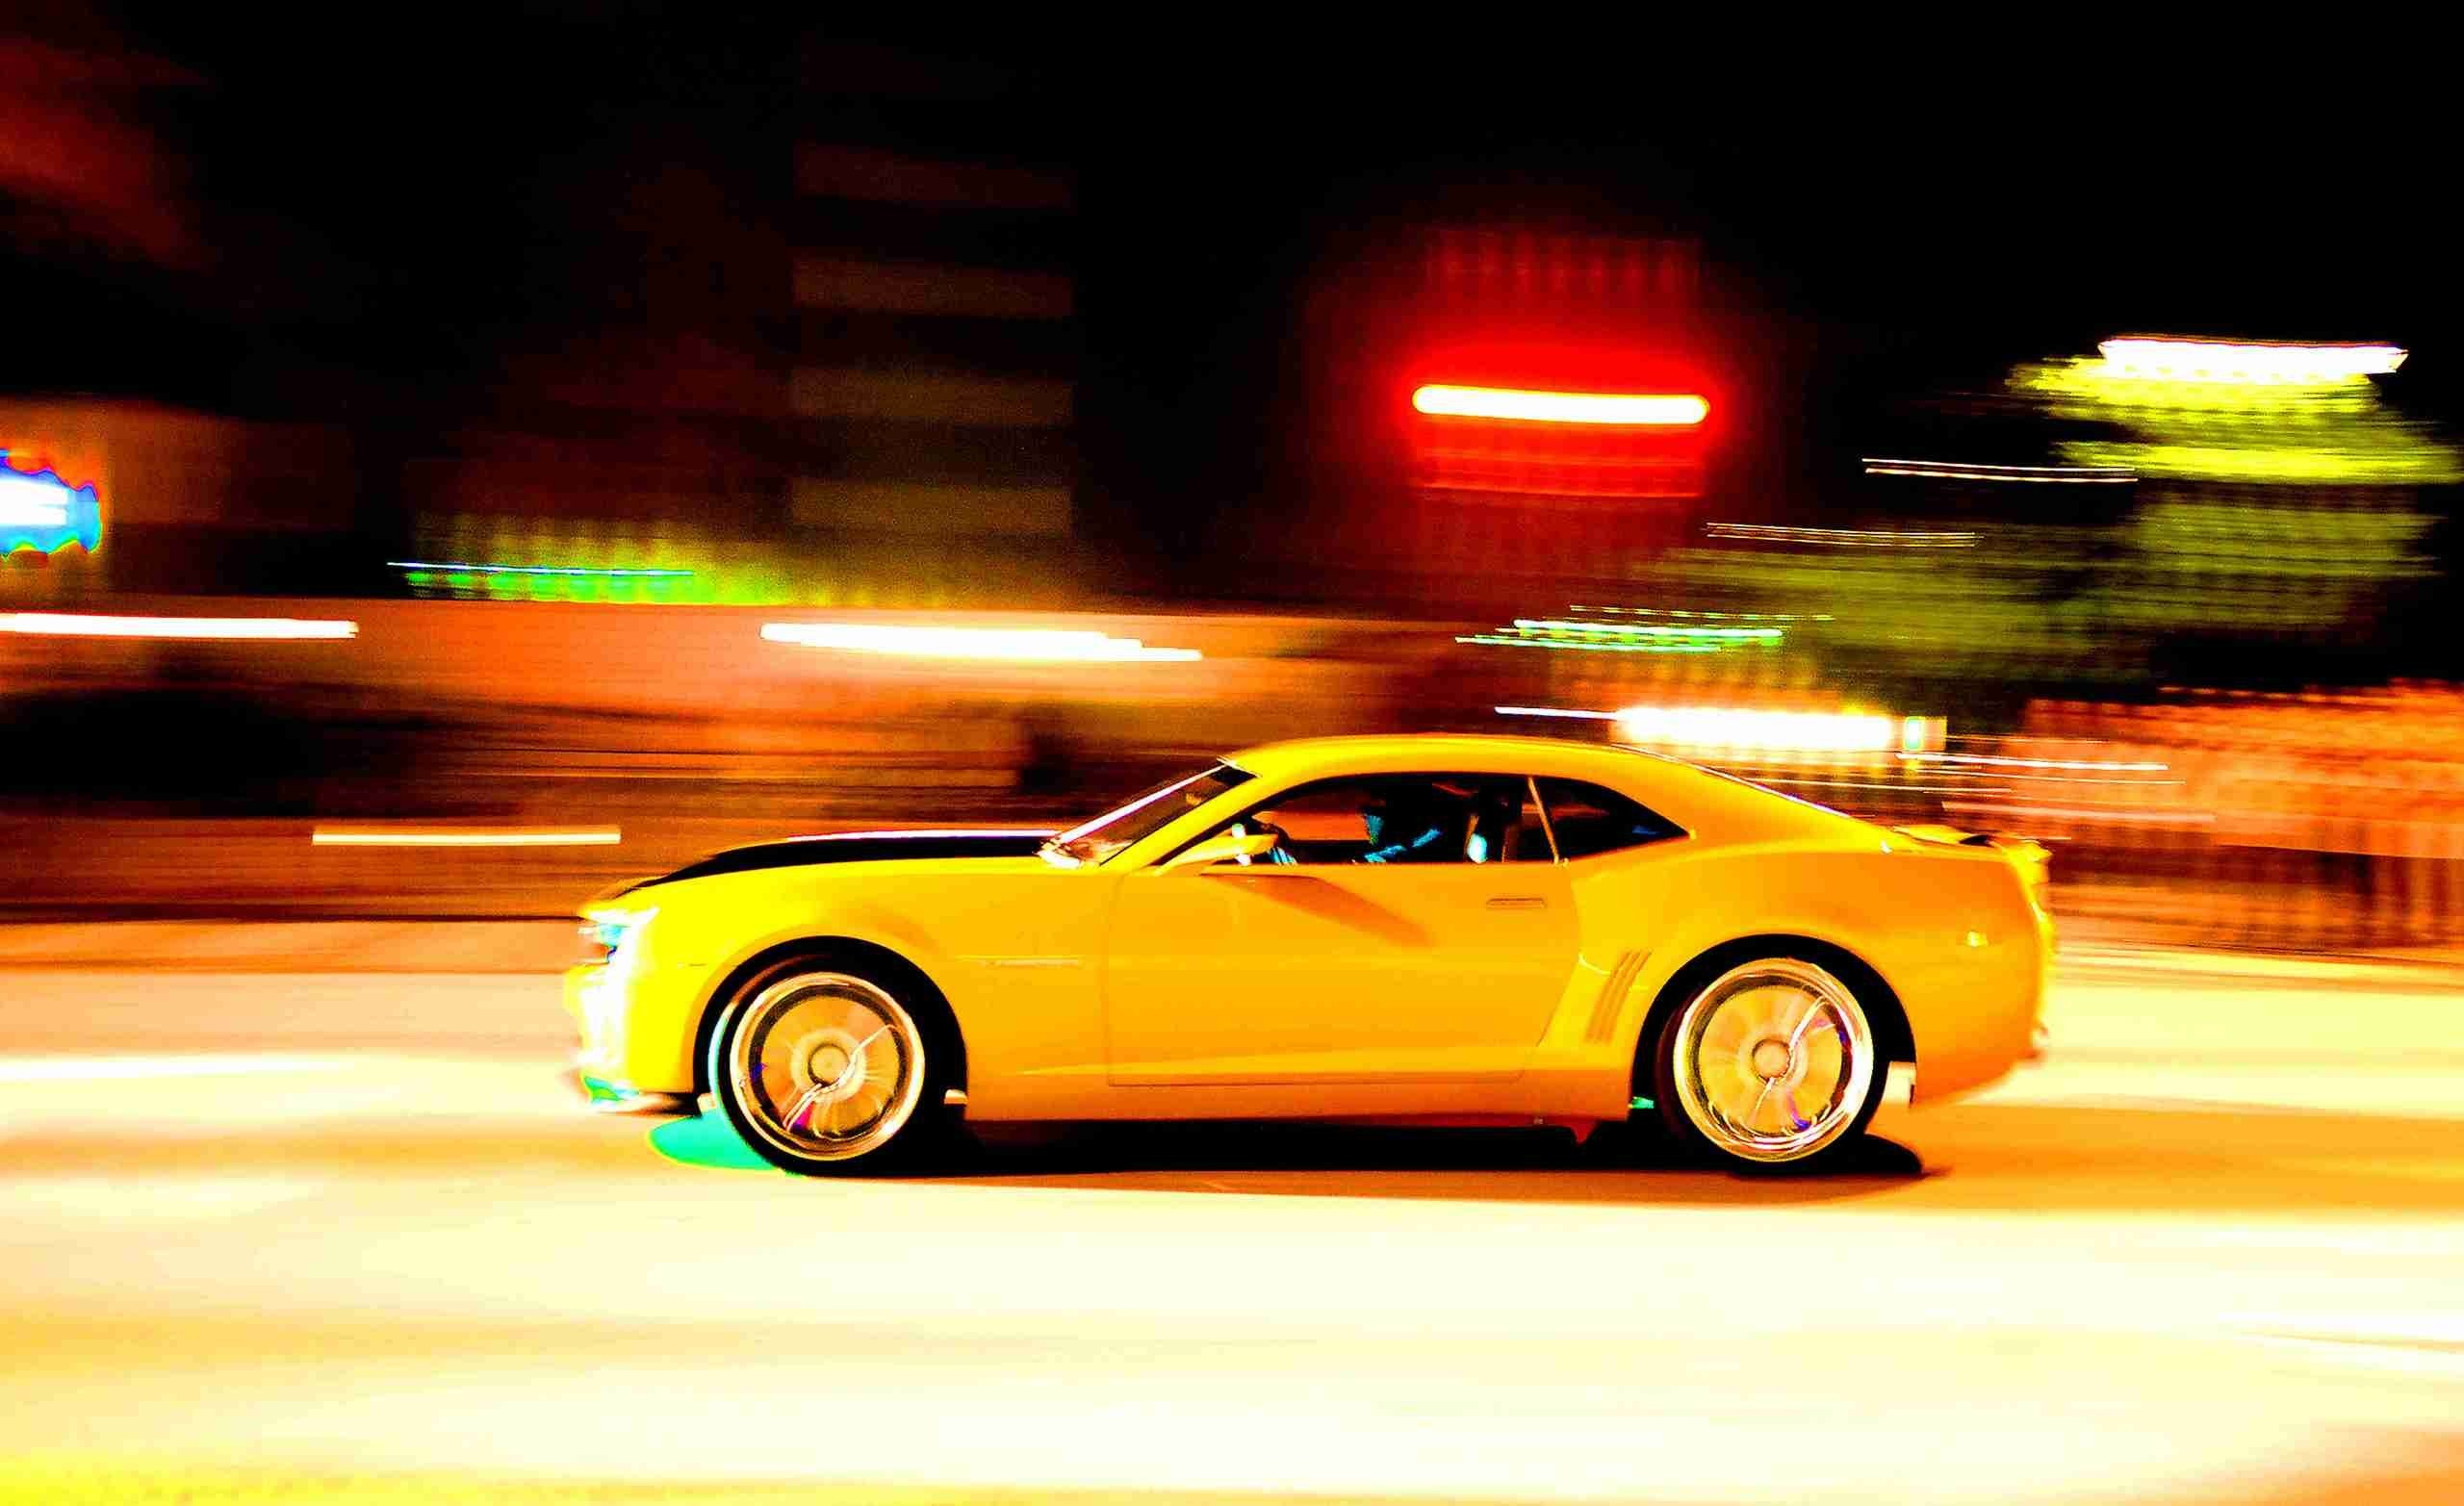 Transformers movies cars bumblebee chevrolet camaro yellow - Transformers bumblebee car wallpaper ...